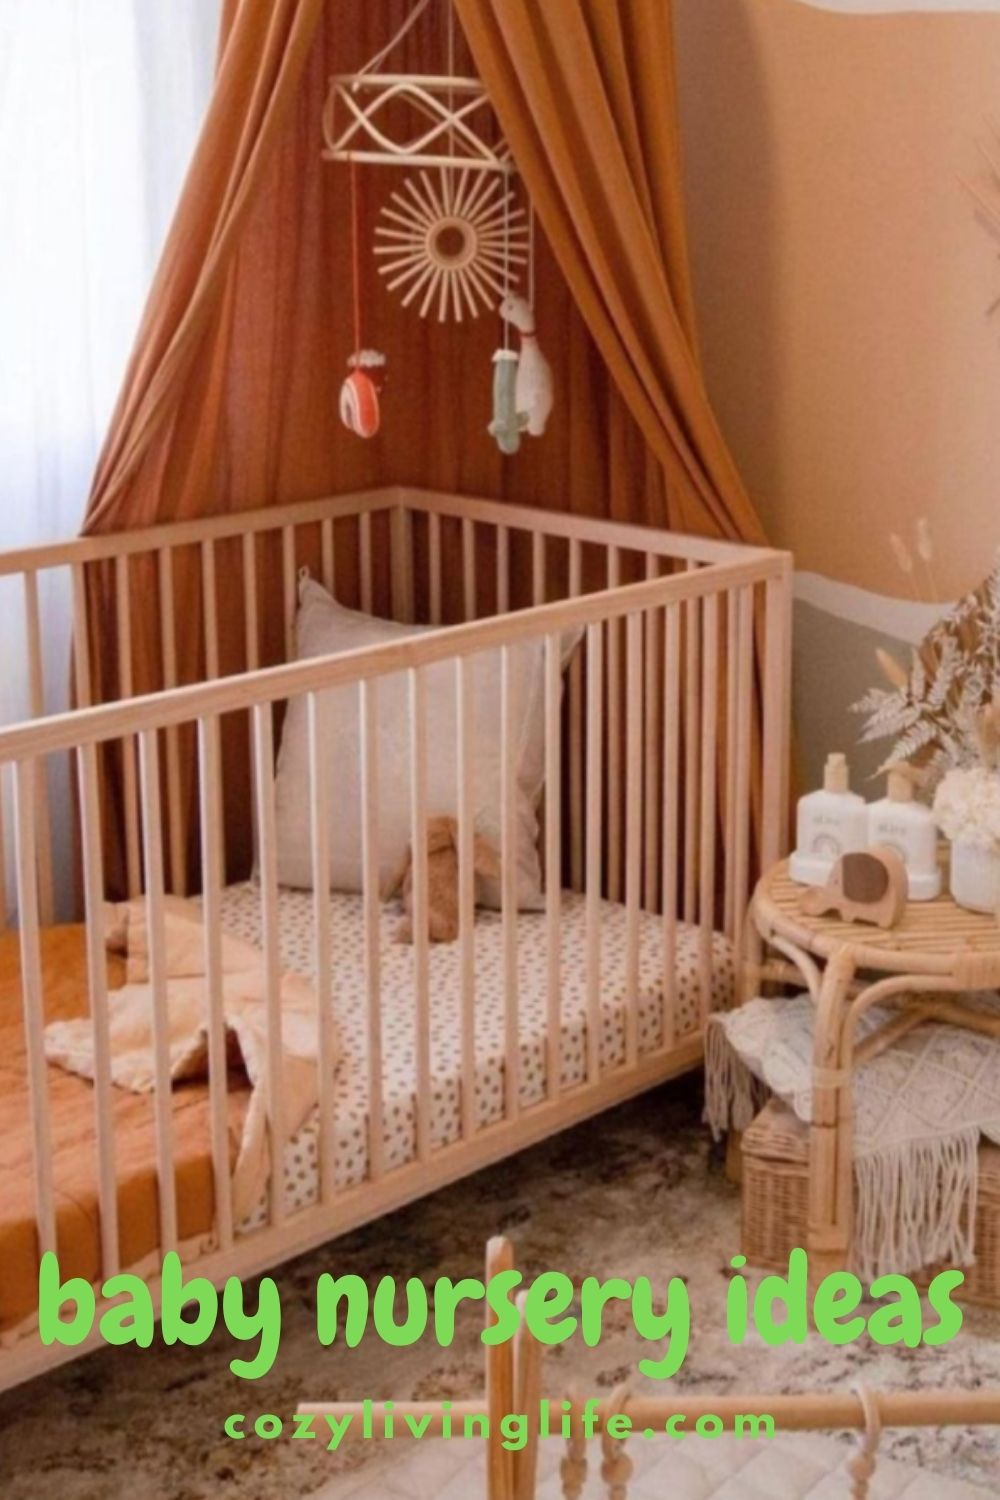 35 Best baby nursery ideas to Help You Get Ready for Parenthood